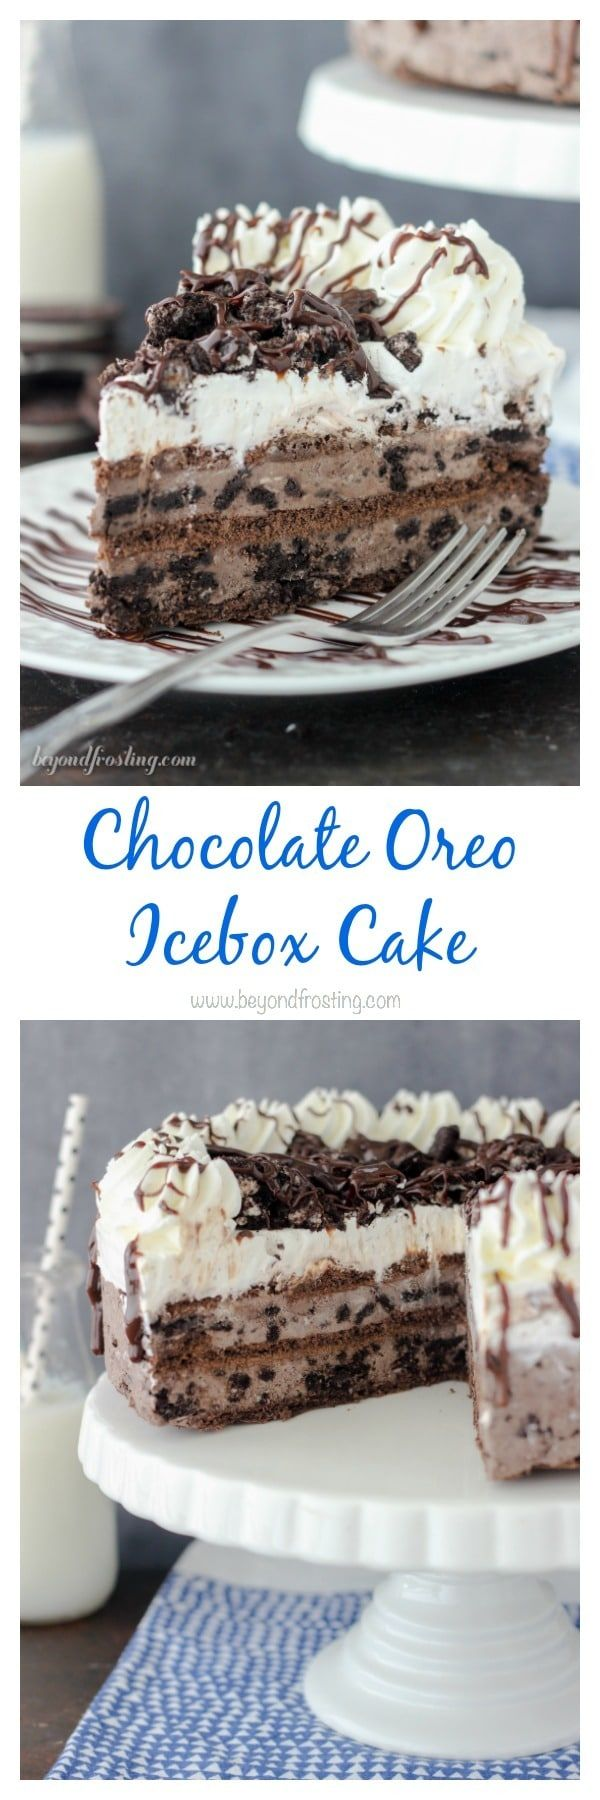 Cut yourself a big slice of this Chocolate Oreo Icebox Cake! The layers of chocolate Oreo mousse, chocolate graham crackers and whipped cream. Be sure to through a handful of Oreos and hot fudge sauce on top. Grab the recipe at beyondfrosting.com